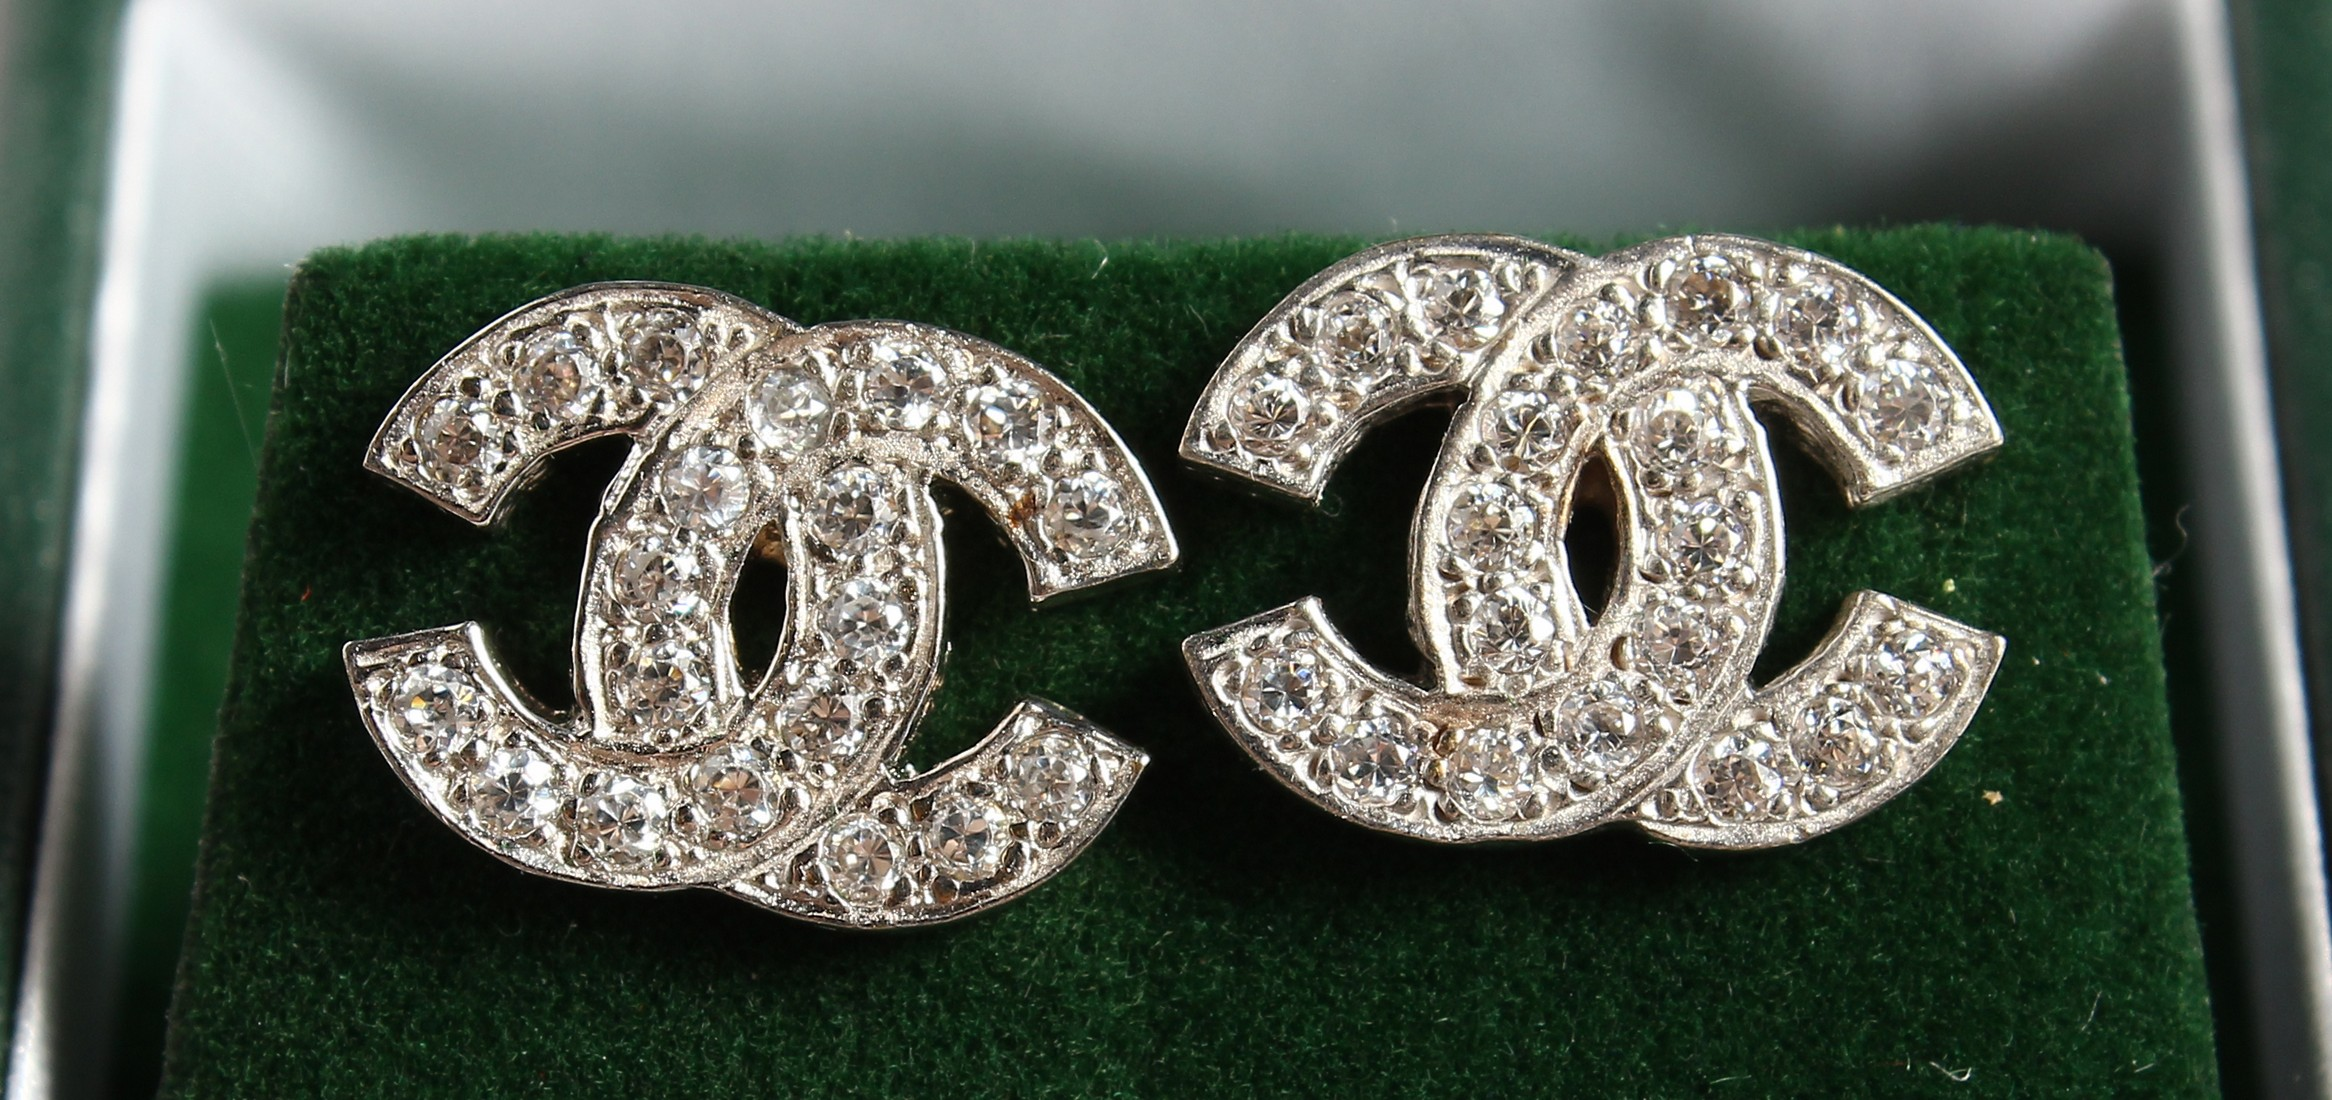 A PAIR OF 9CT GOLD CC ZIRCON SET EARRINGS.